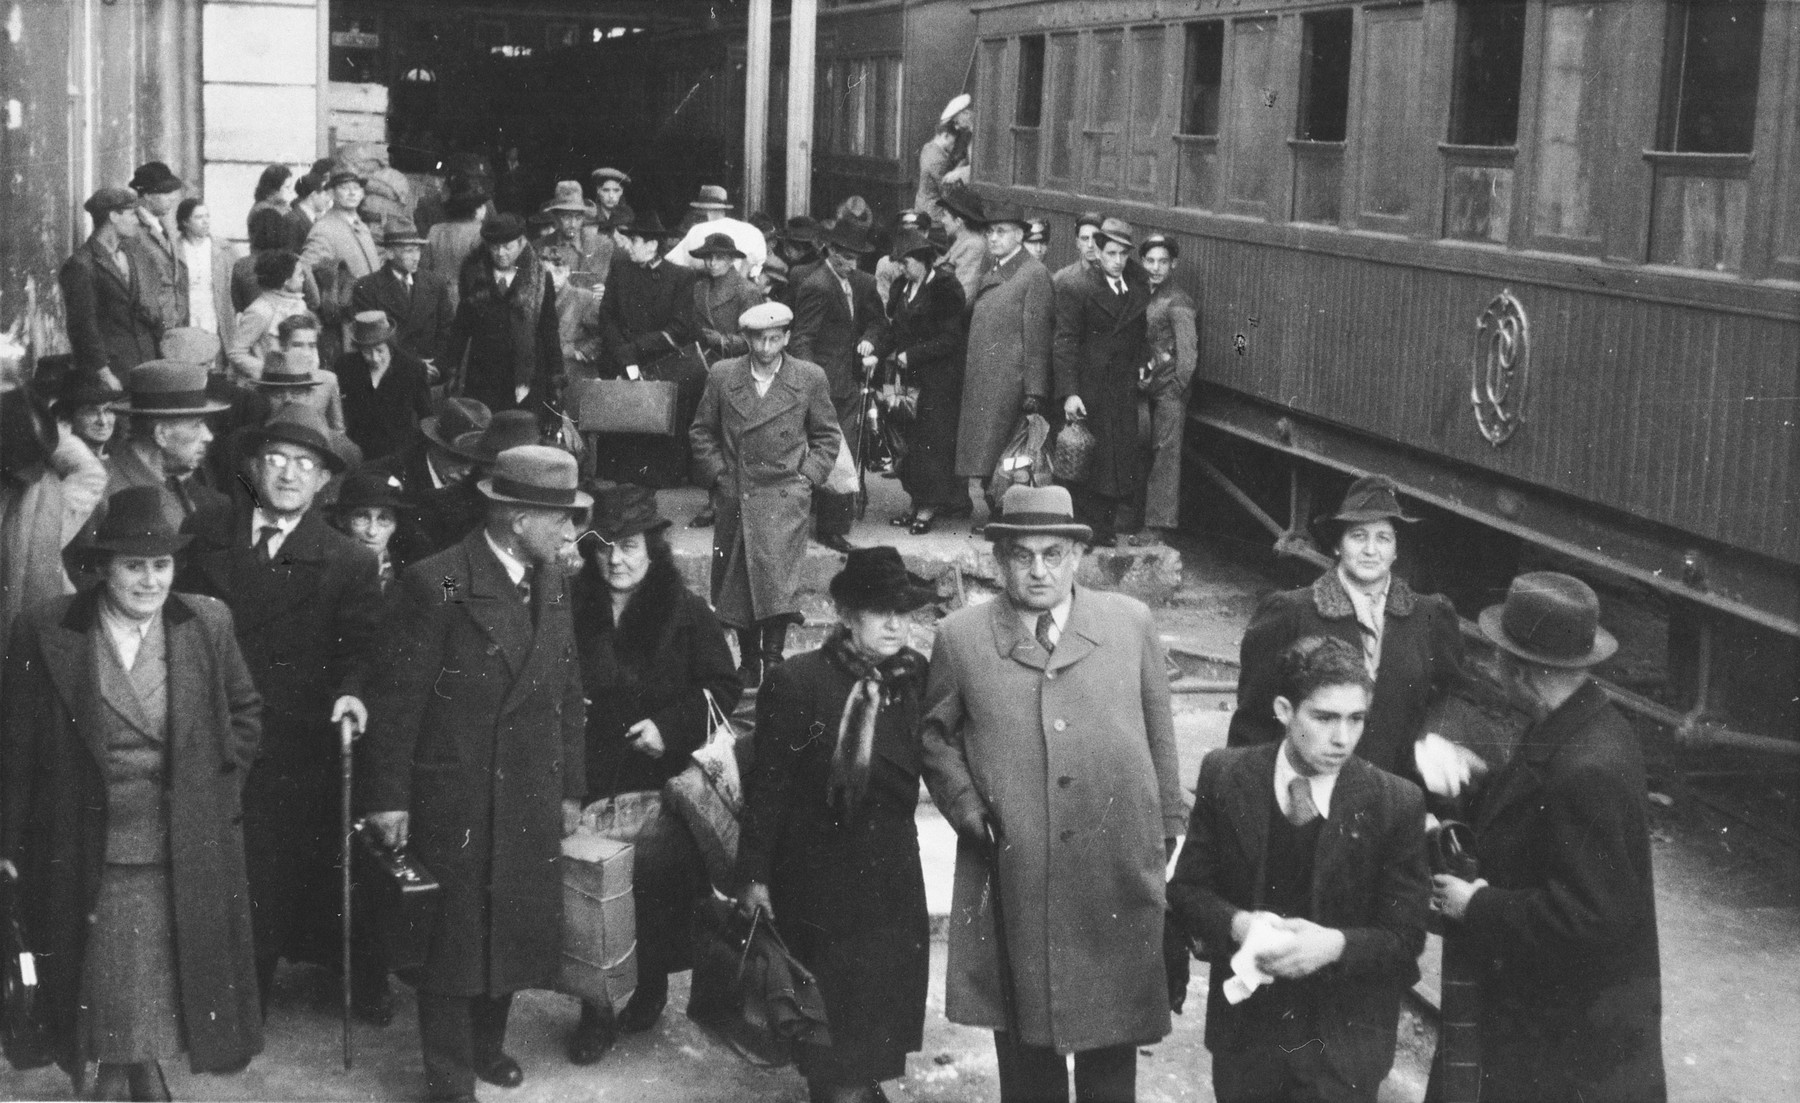 Group portrait of newly arrived Jewish refugees at the St. Appolonia train station in Lisbon.